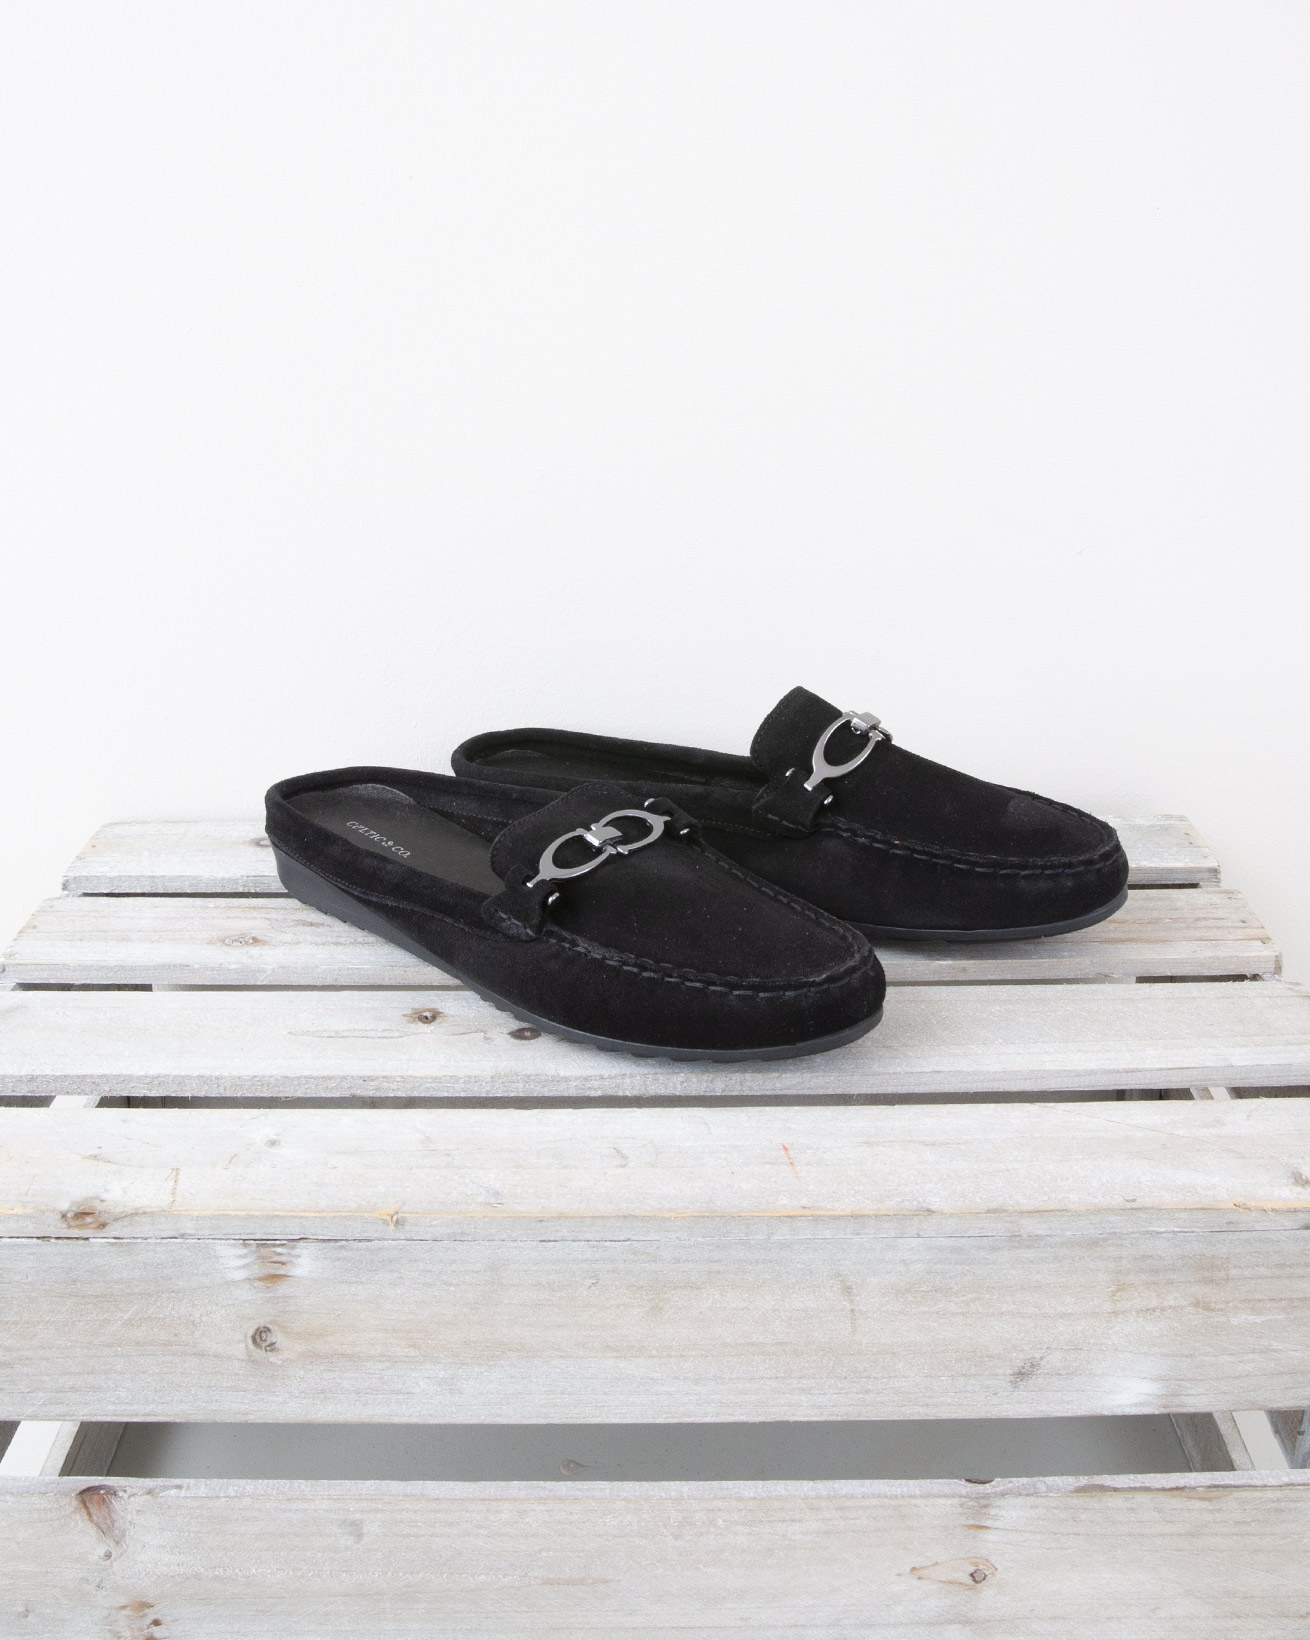 Slip on Loafer Mule - Size 40 - Black - 1332